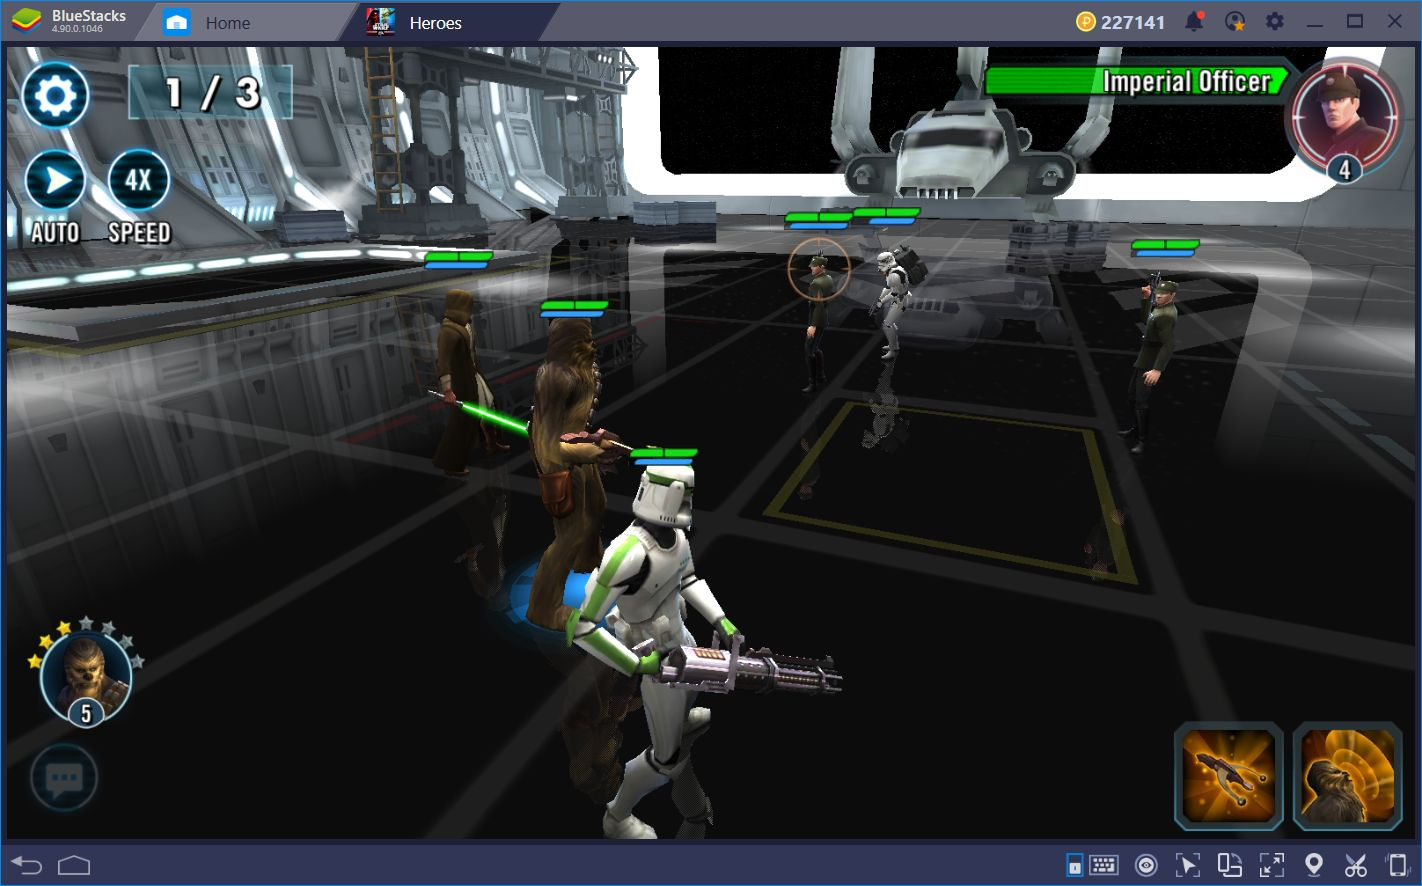 The Best Squadrons in Star Wars: Galaxy of Heroes | BlueStacks